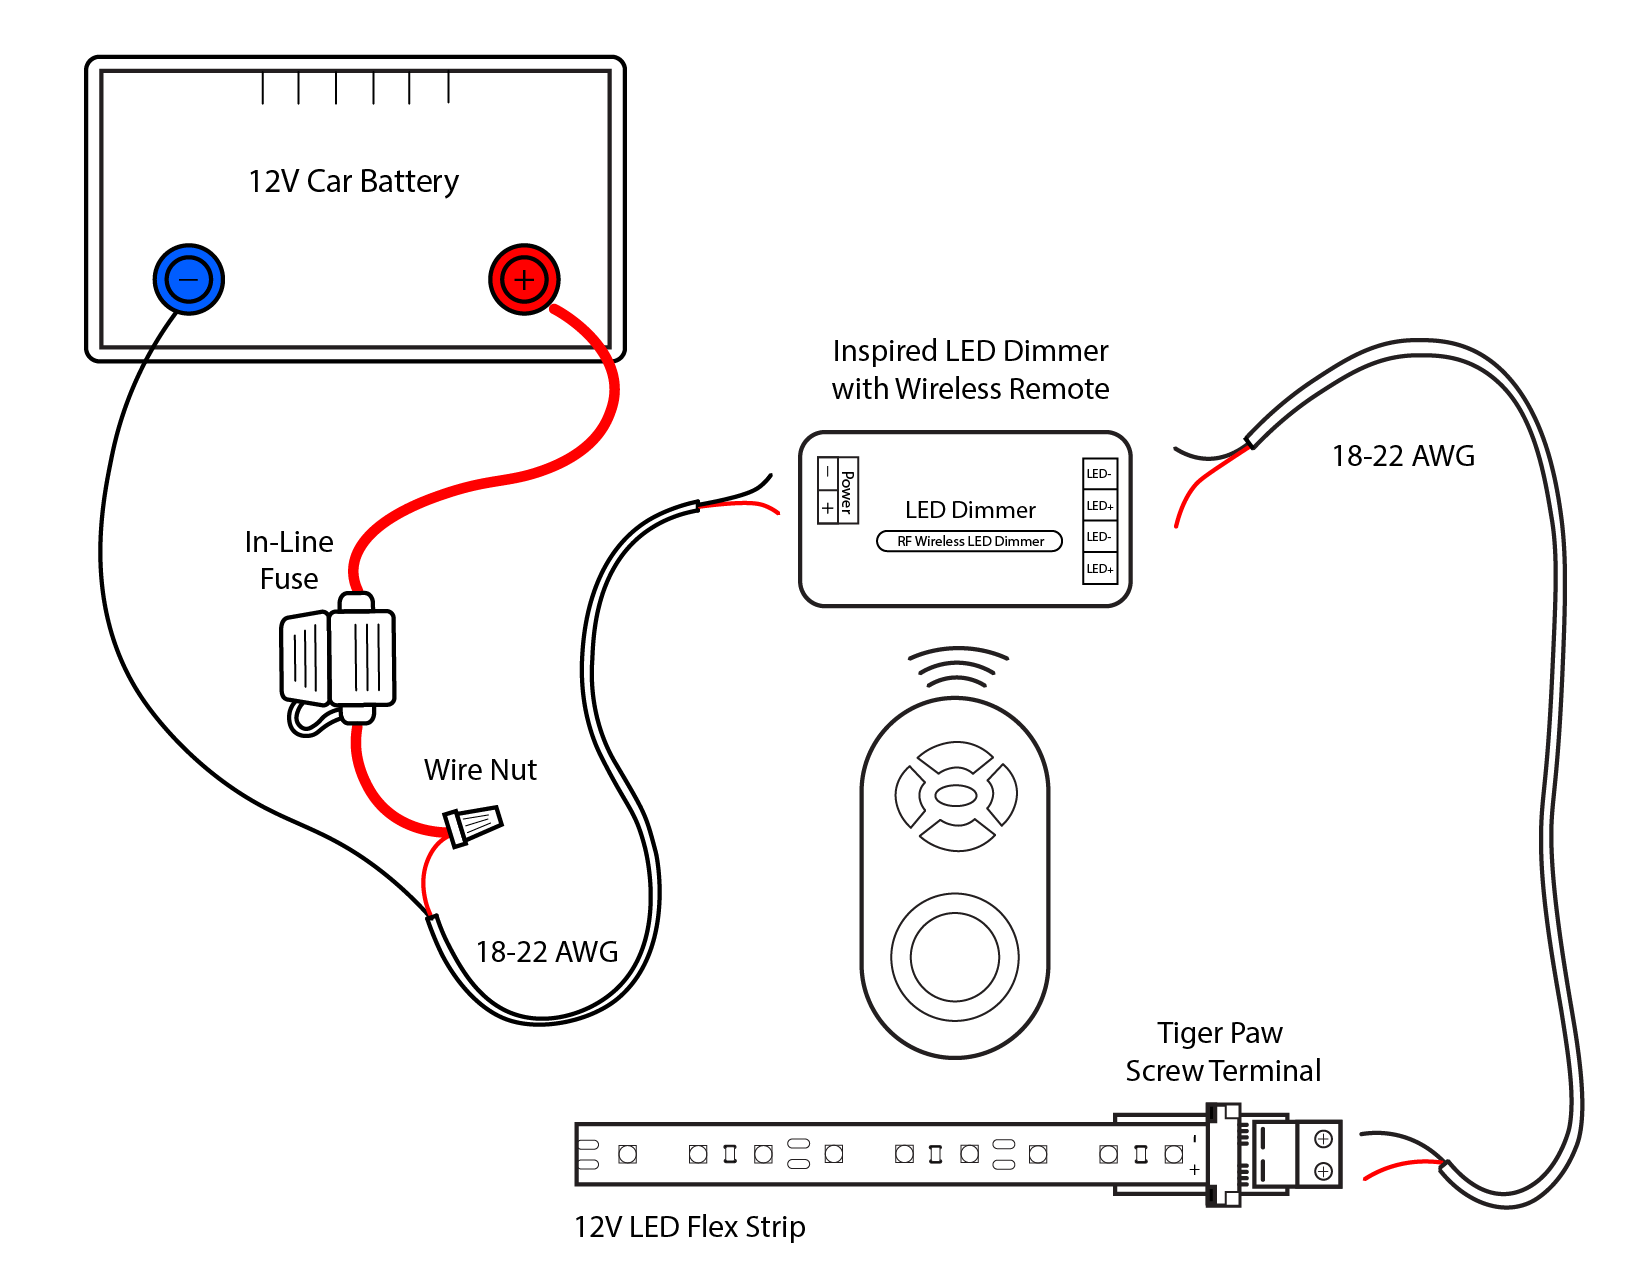 New Dual Battery Wiring Diagram Car Audio Con Imagenes